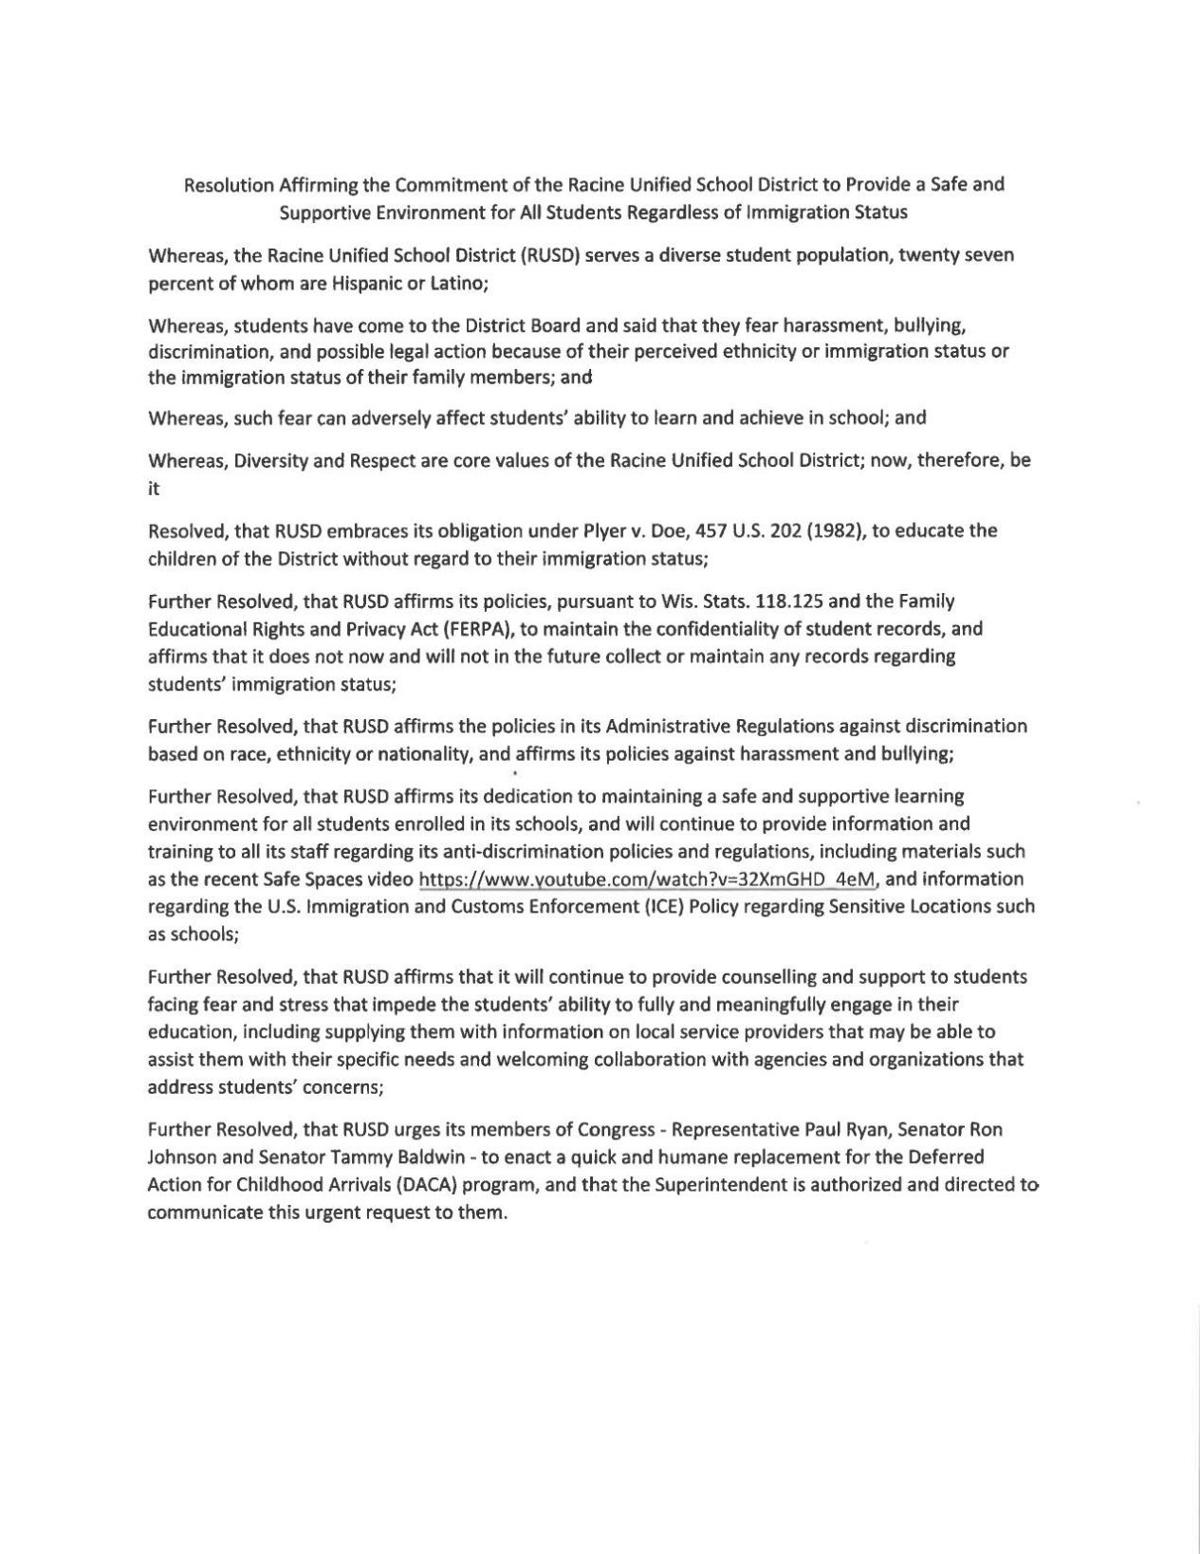 Resolution Attached To Daca Letter   JournaltimesCom